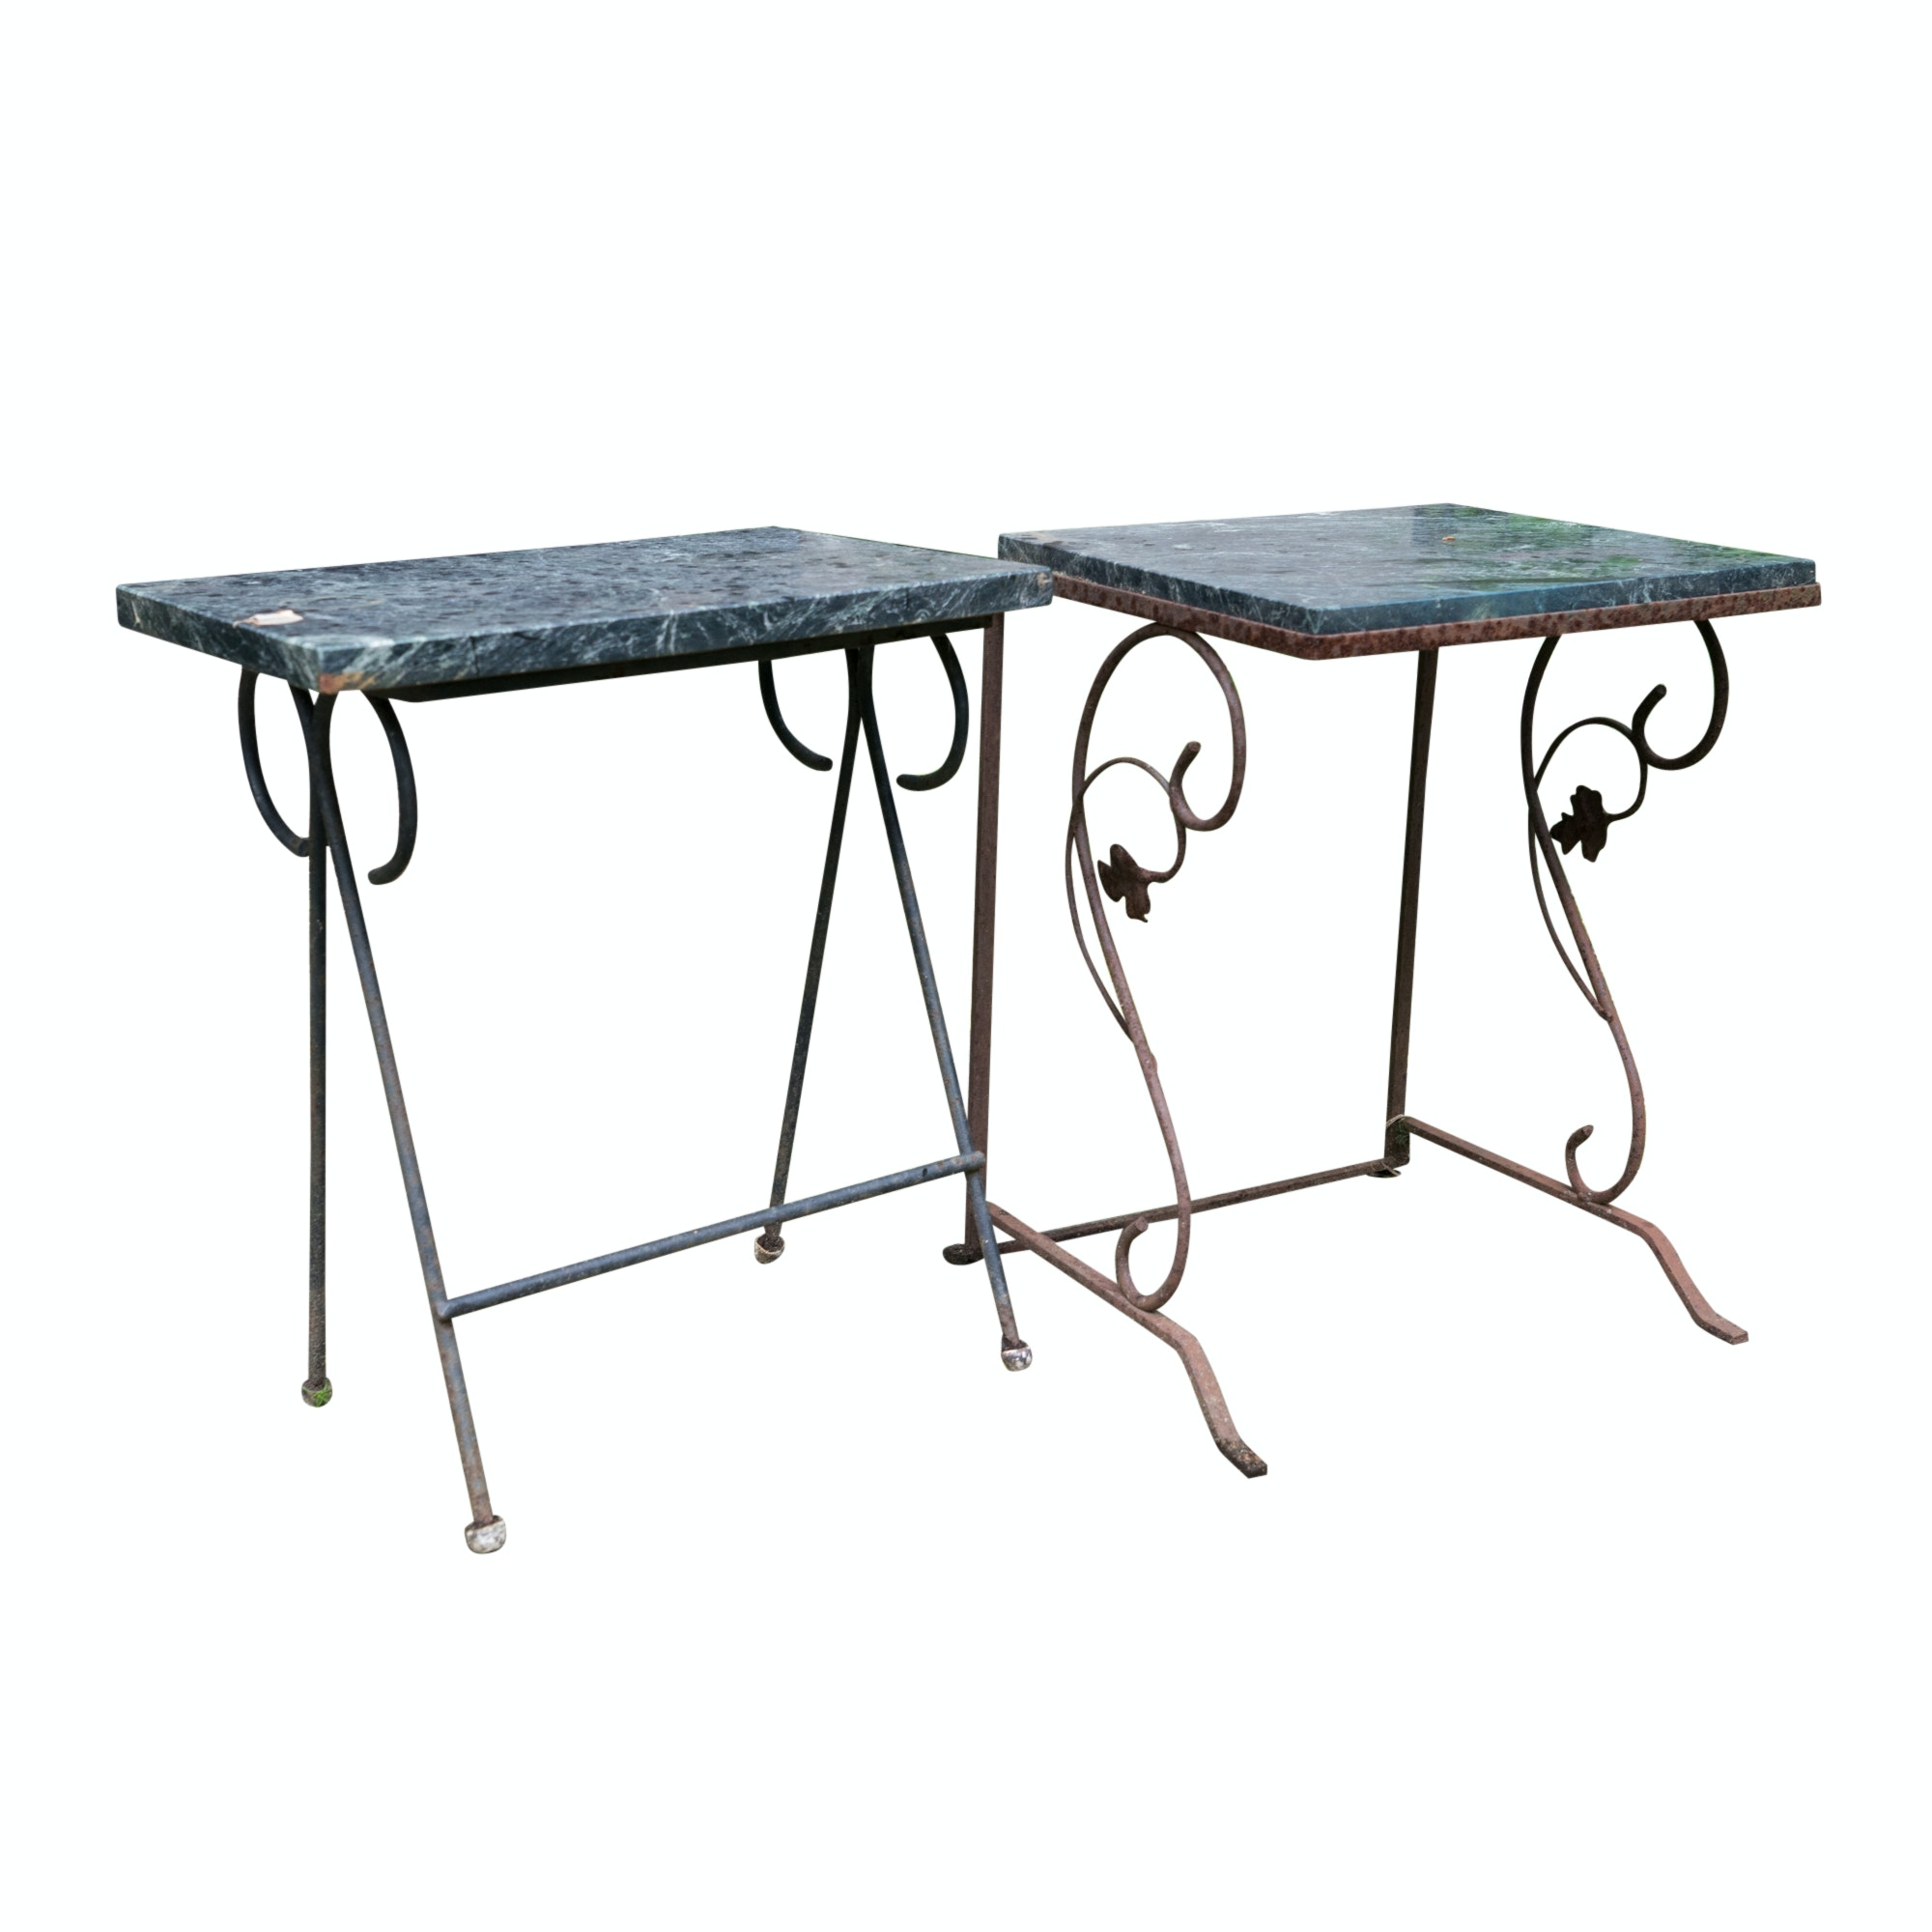 Vintage Wrought Iron and Stone Outdoor Side Tables